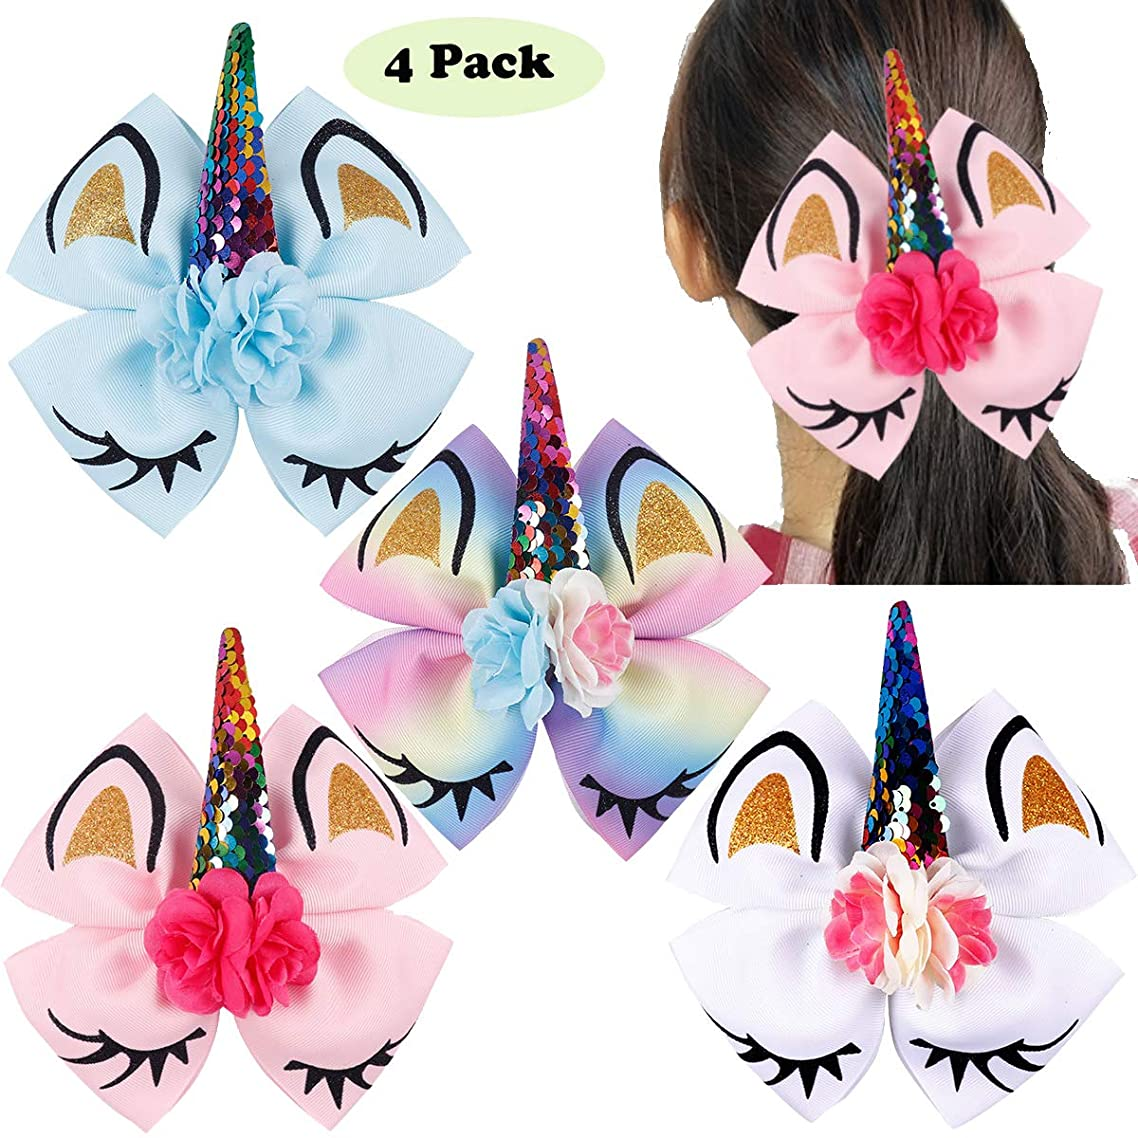 4Pcs 6Inch Large Big Unicorn Hair Bows Glitter Sparkly Cheer Bows Alligator Hair Clips Hair Accessories for Girls Toddlers Kids Children Teens